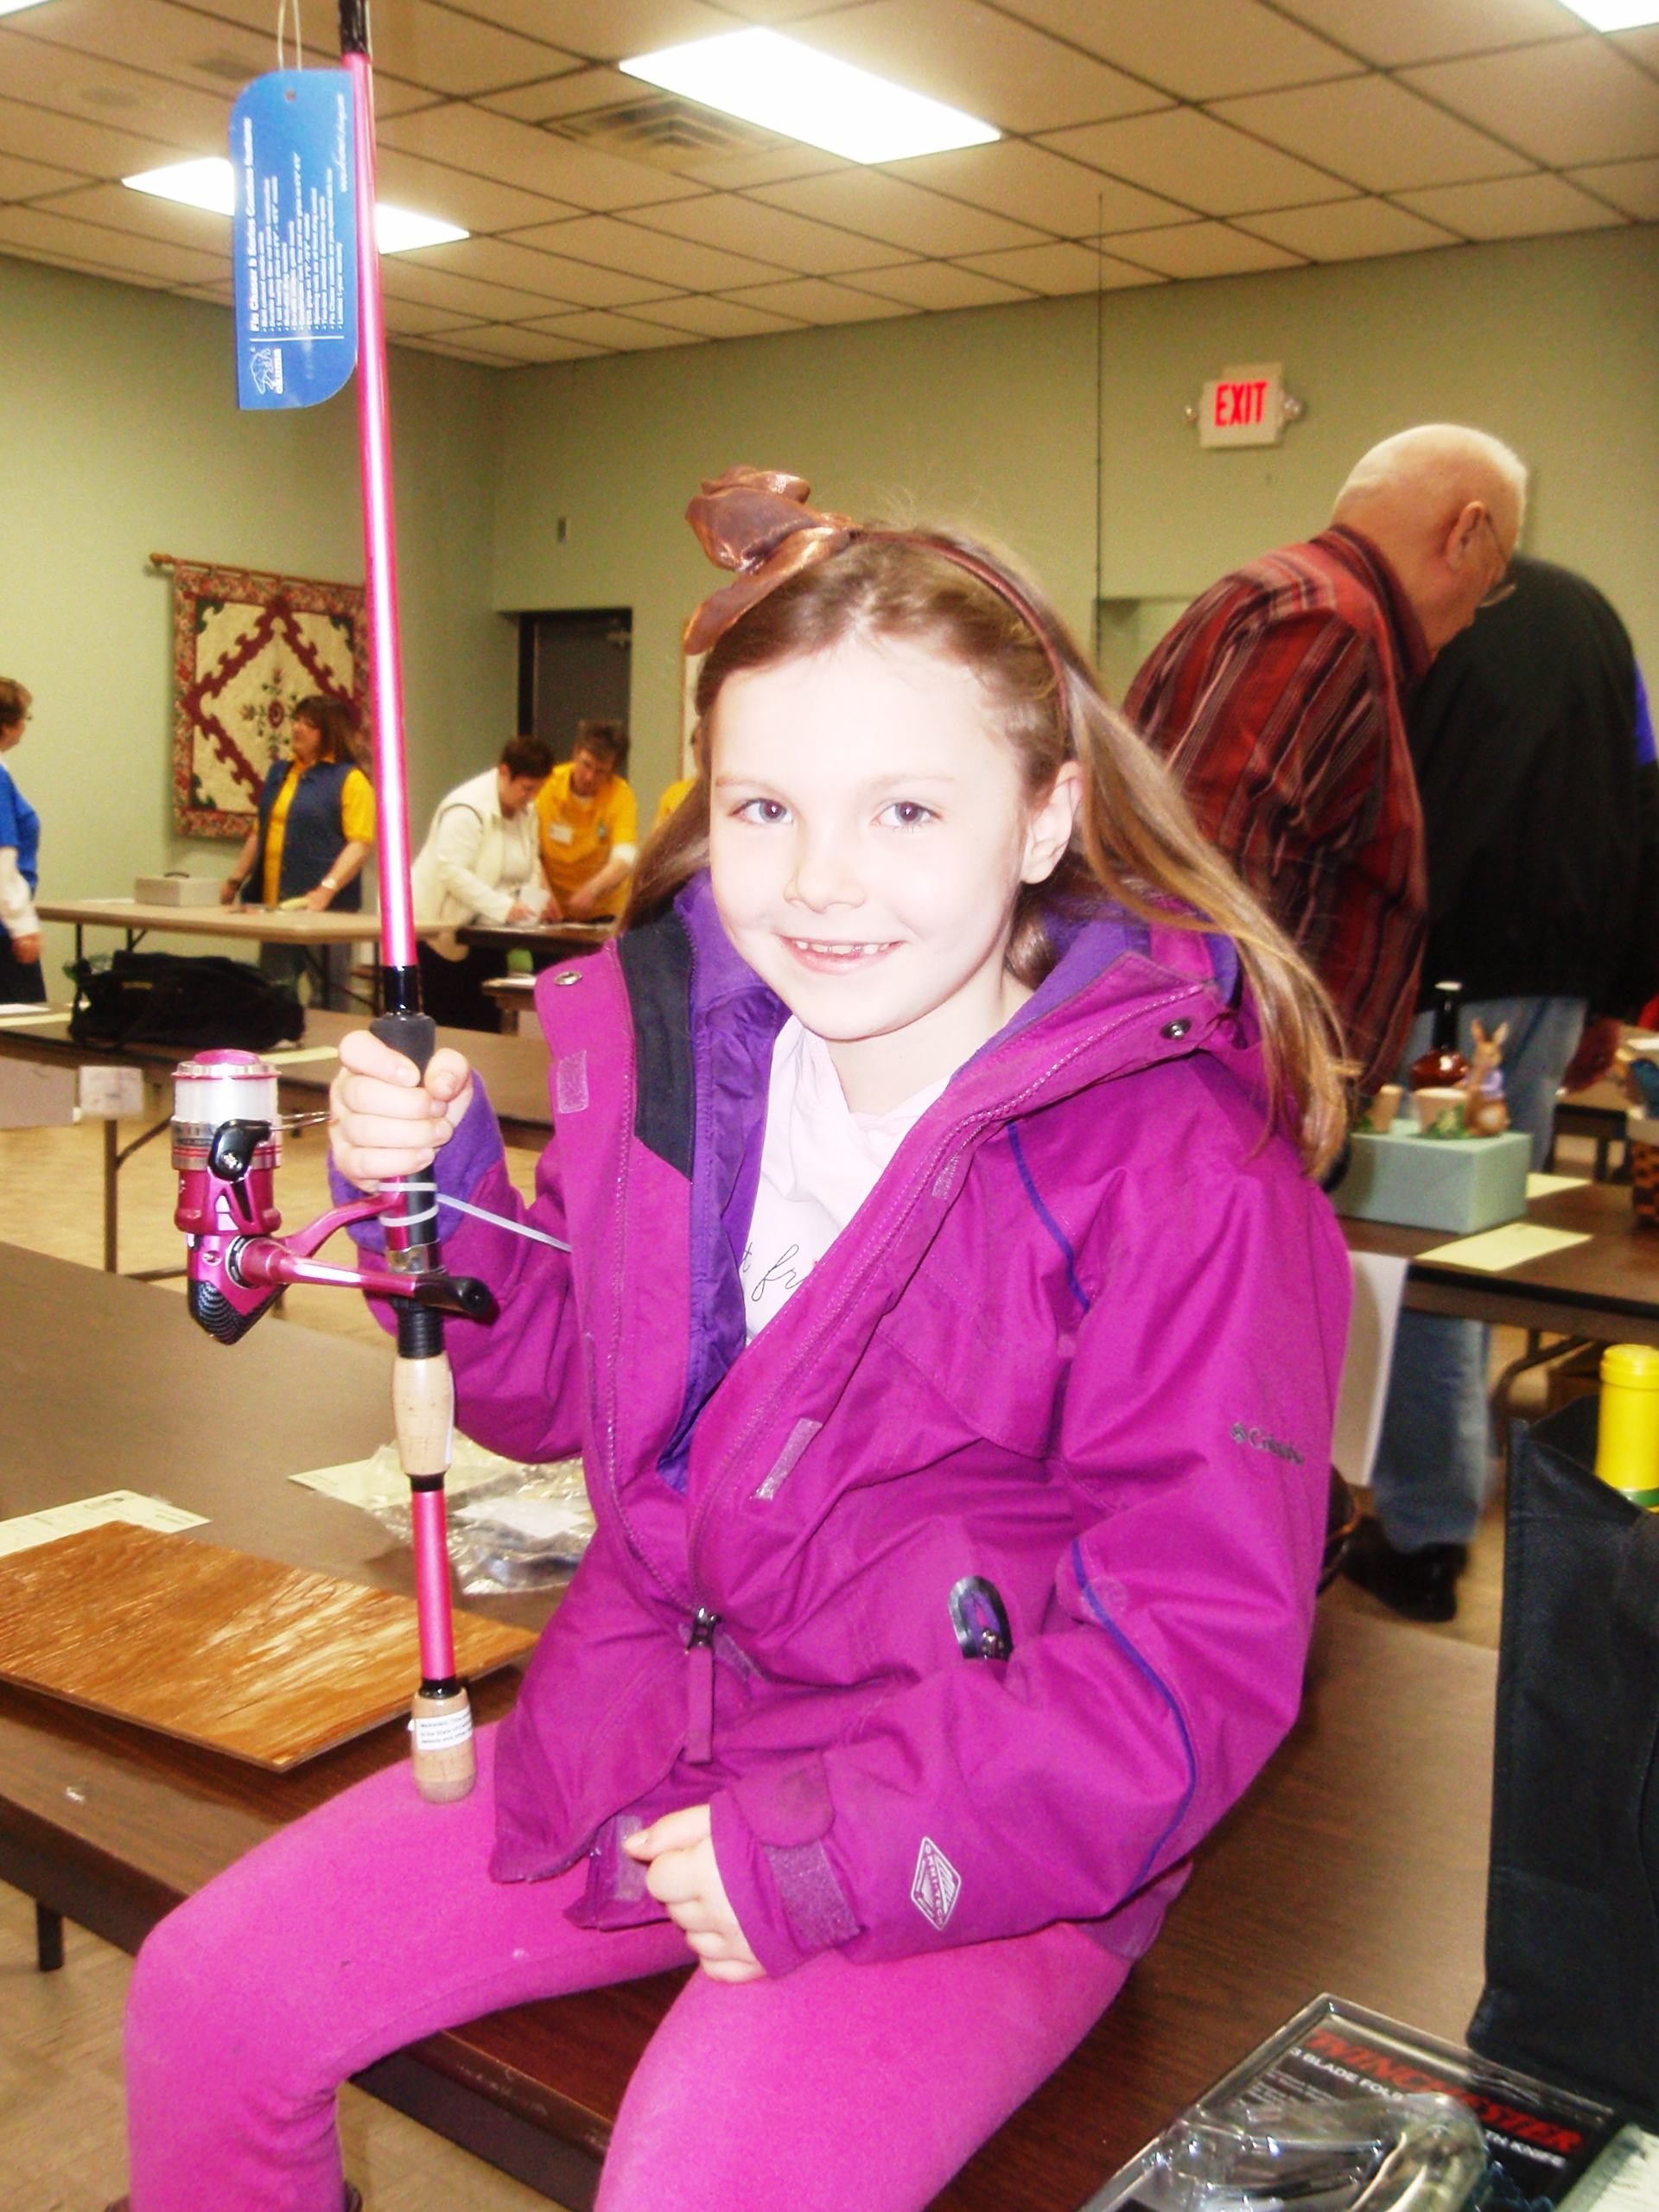 March 23 fishing curling in kandiyohi county for Little girl fishing pole